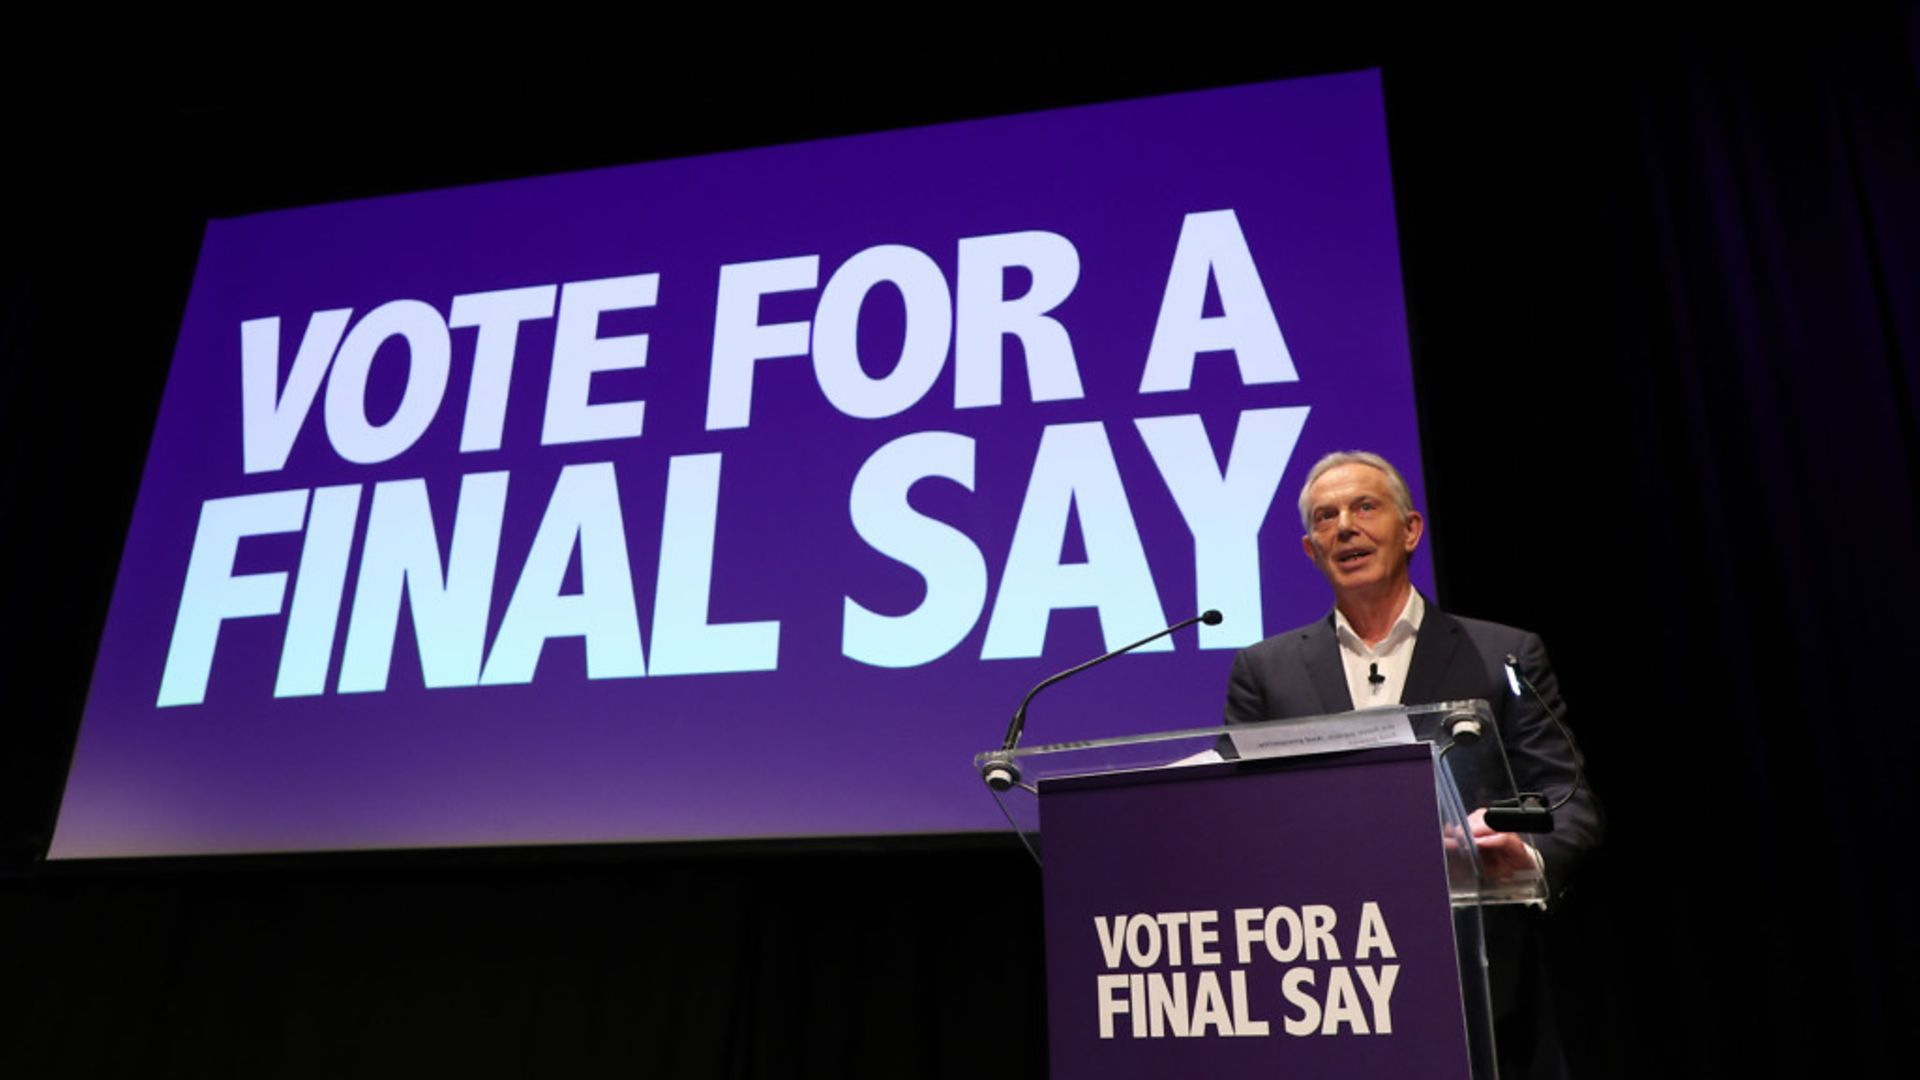 Former prime minister Tony Blair speaking during the Final Say rally at the Mermaid Theatre - Credit: PA